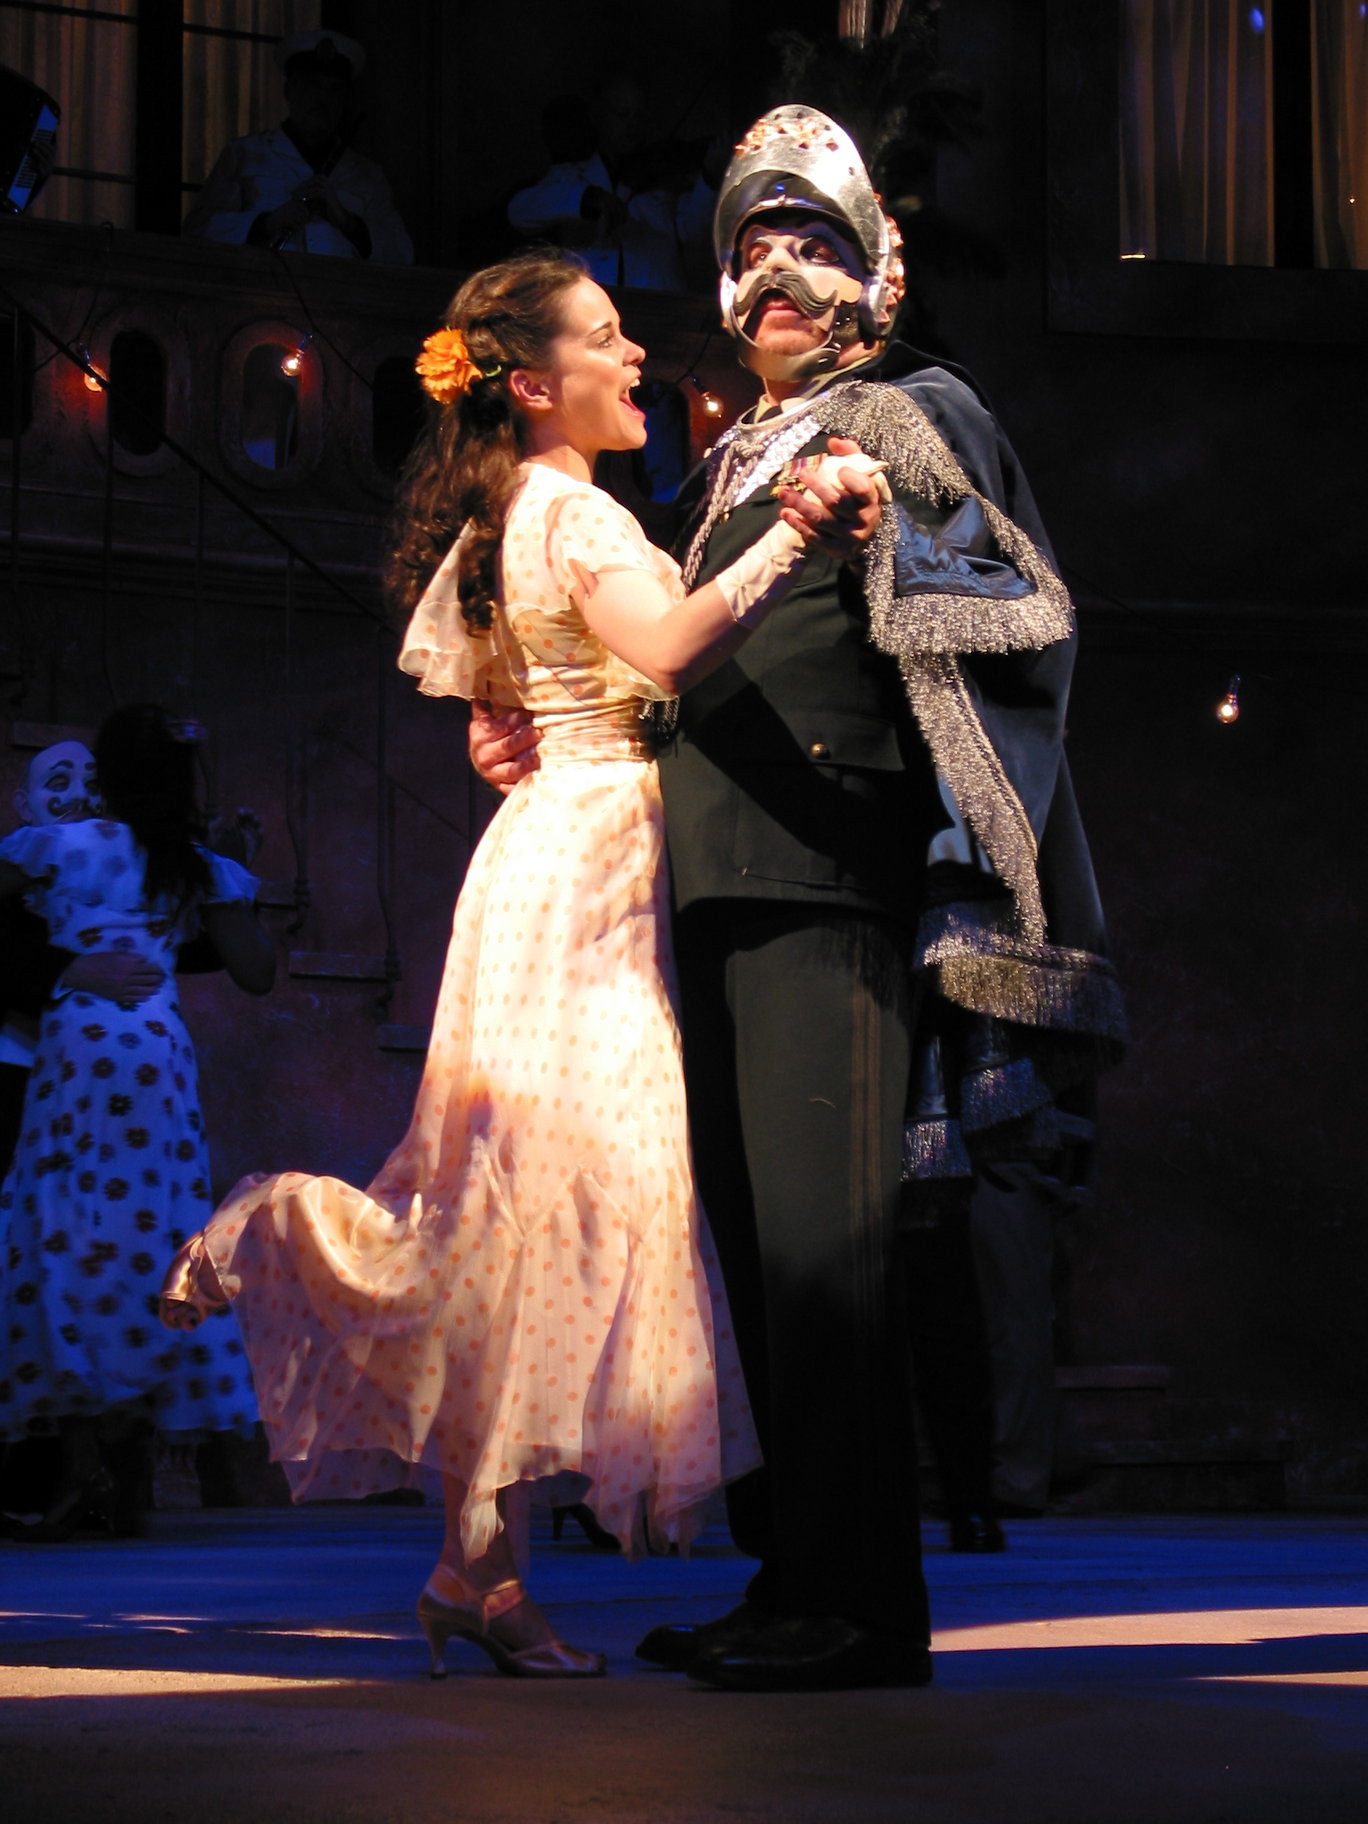 A woman dances with a disguised man at a masked ball.